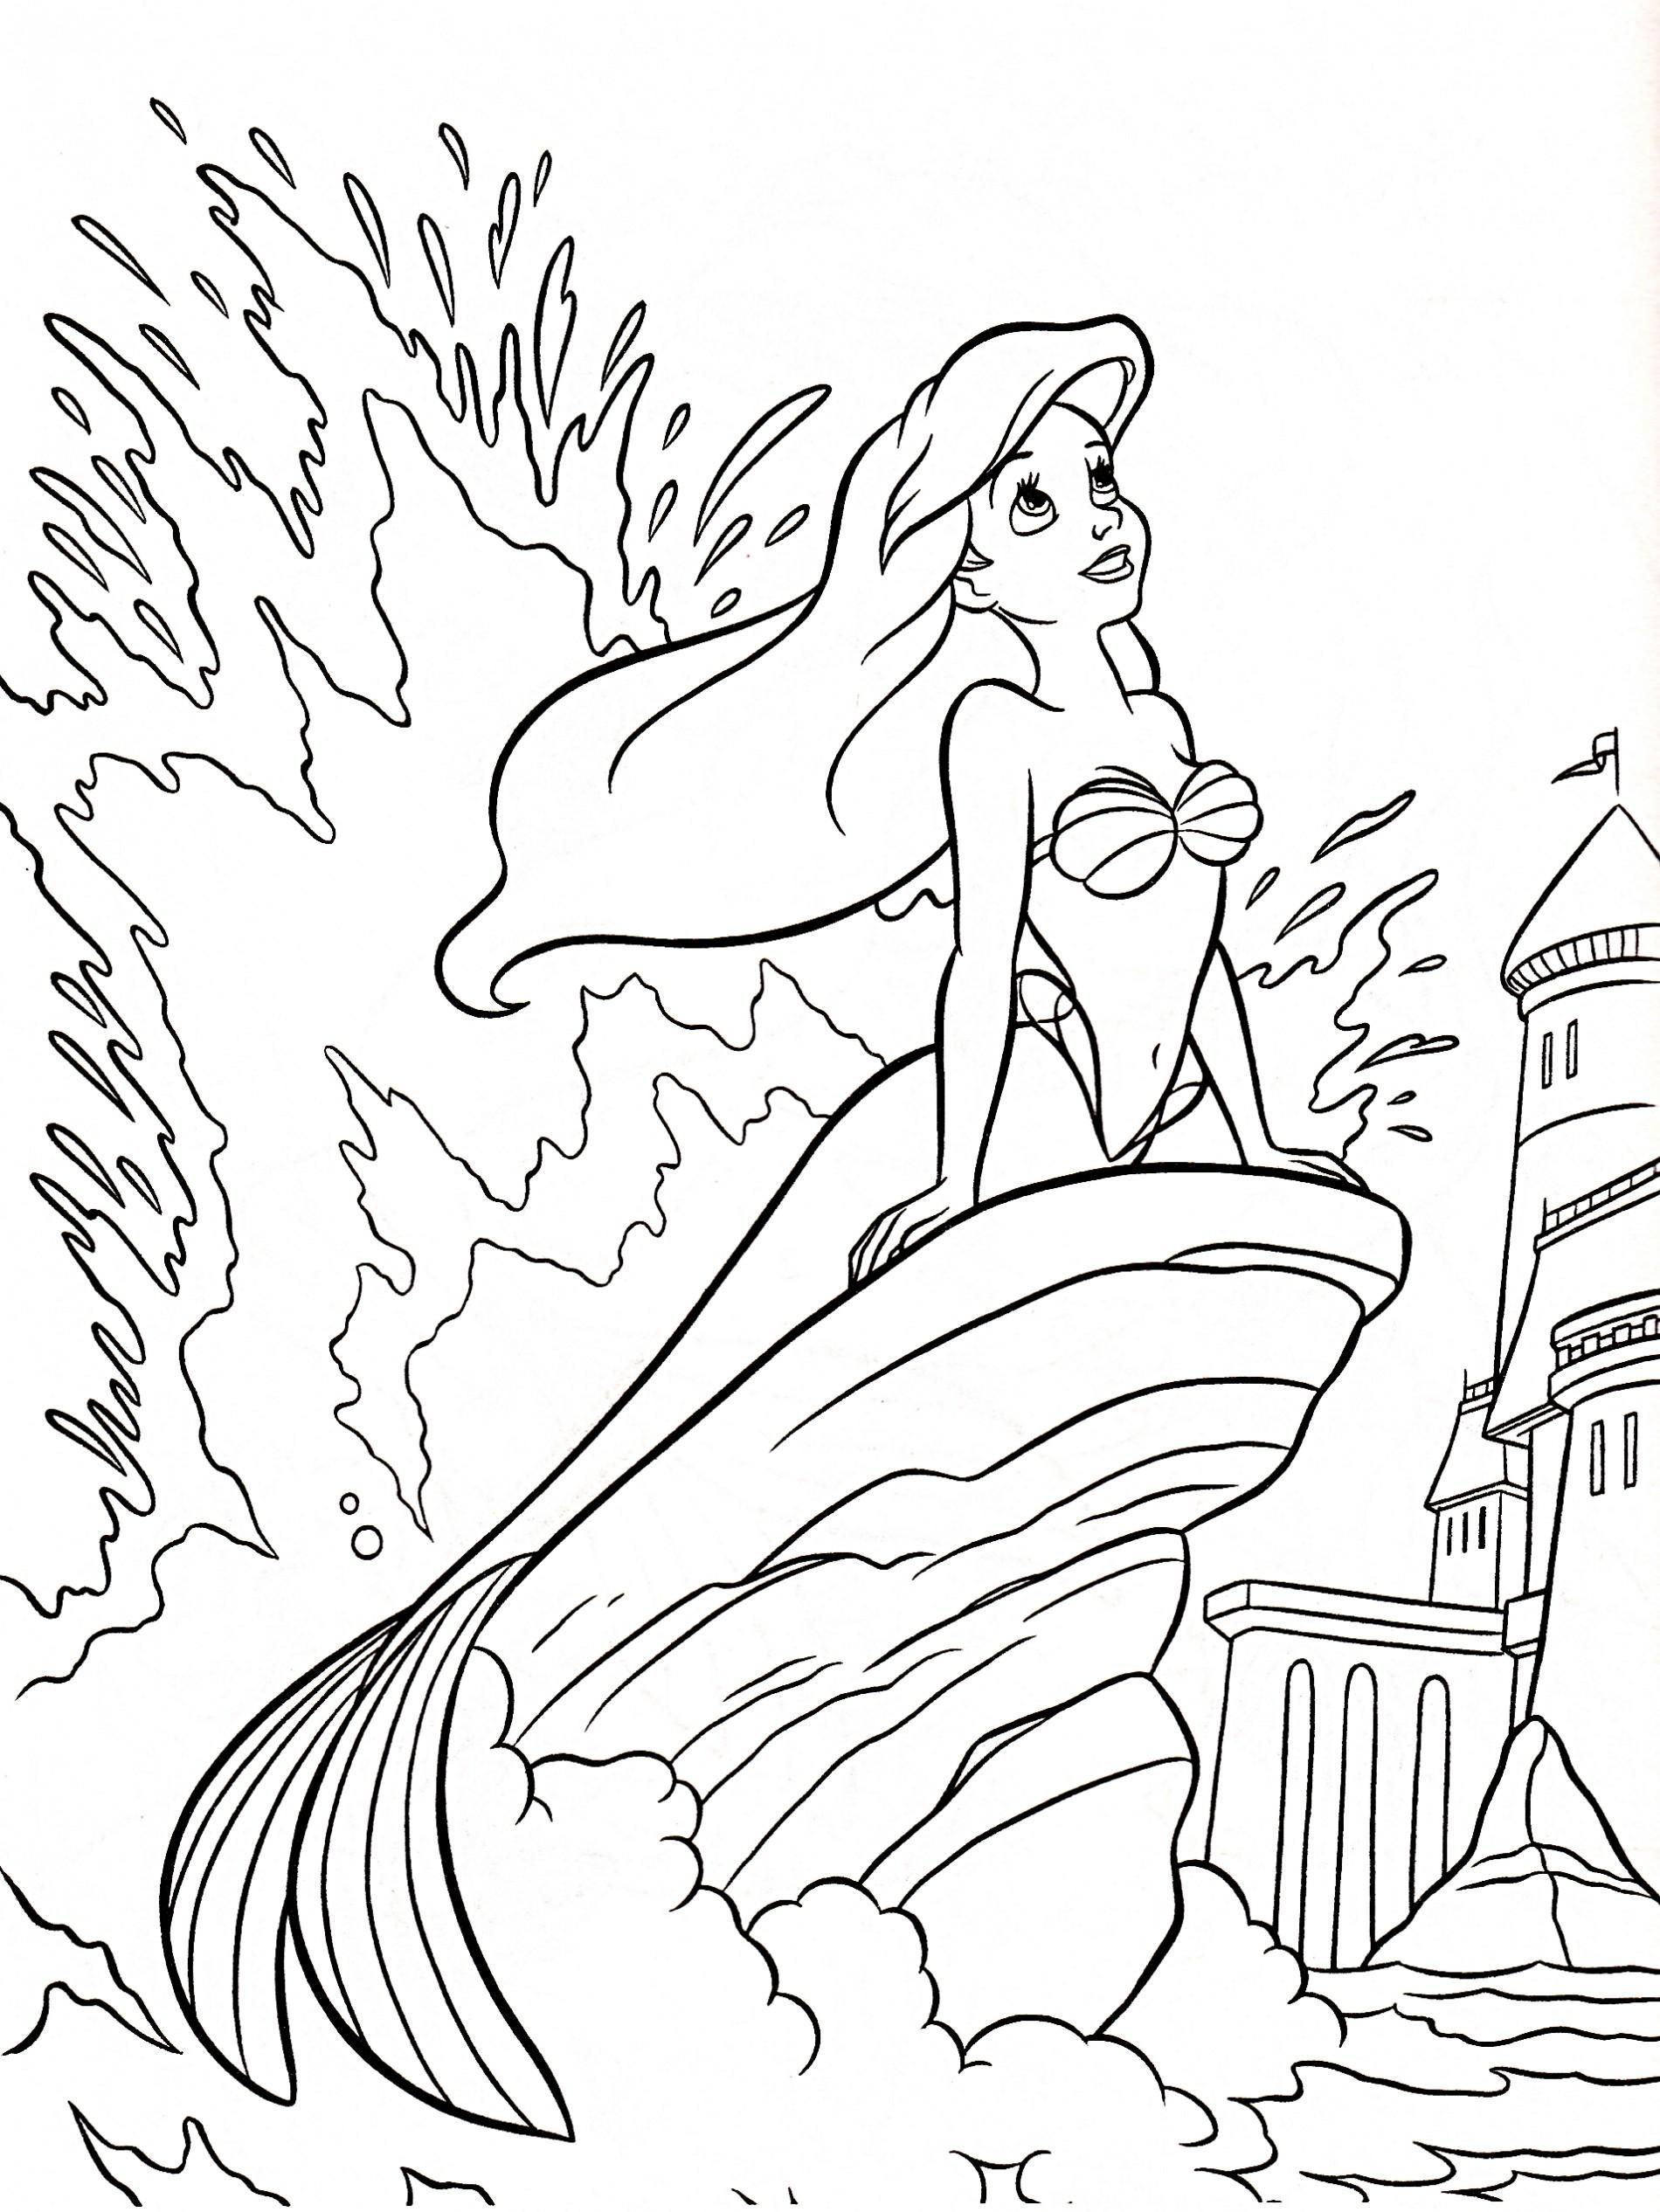 The Little Mermaid Coloring Pages (4) | Disneyclips.com | 2532x1900